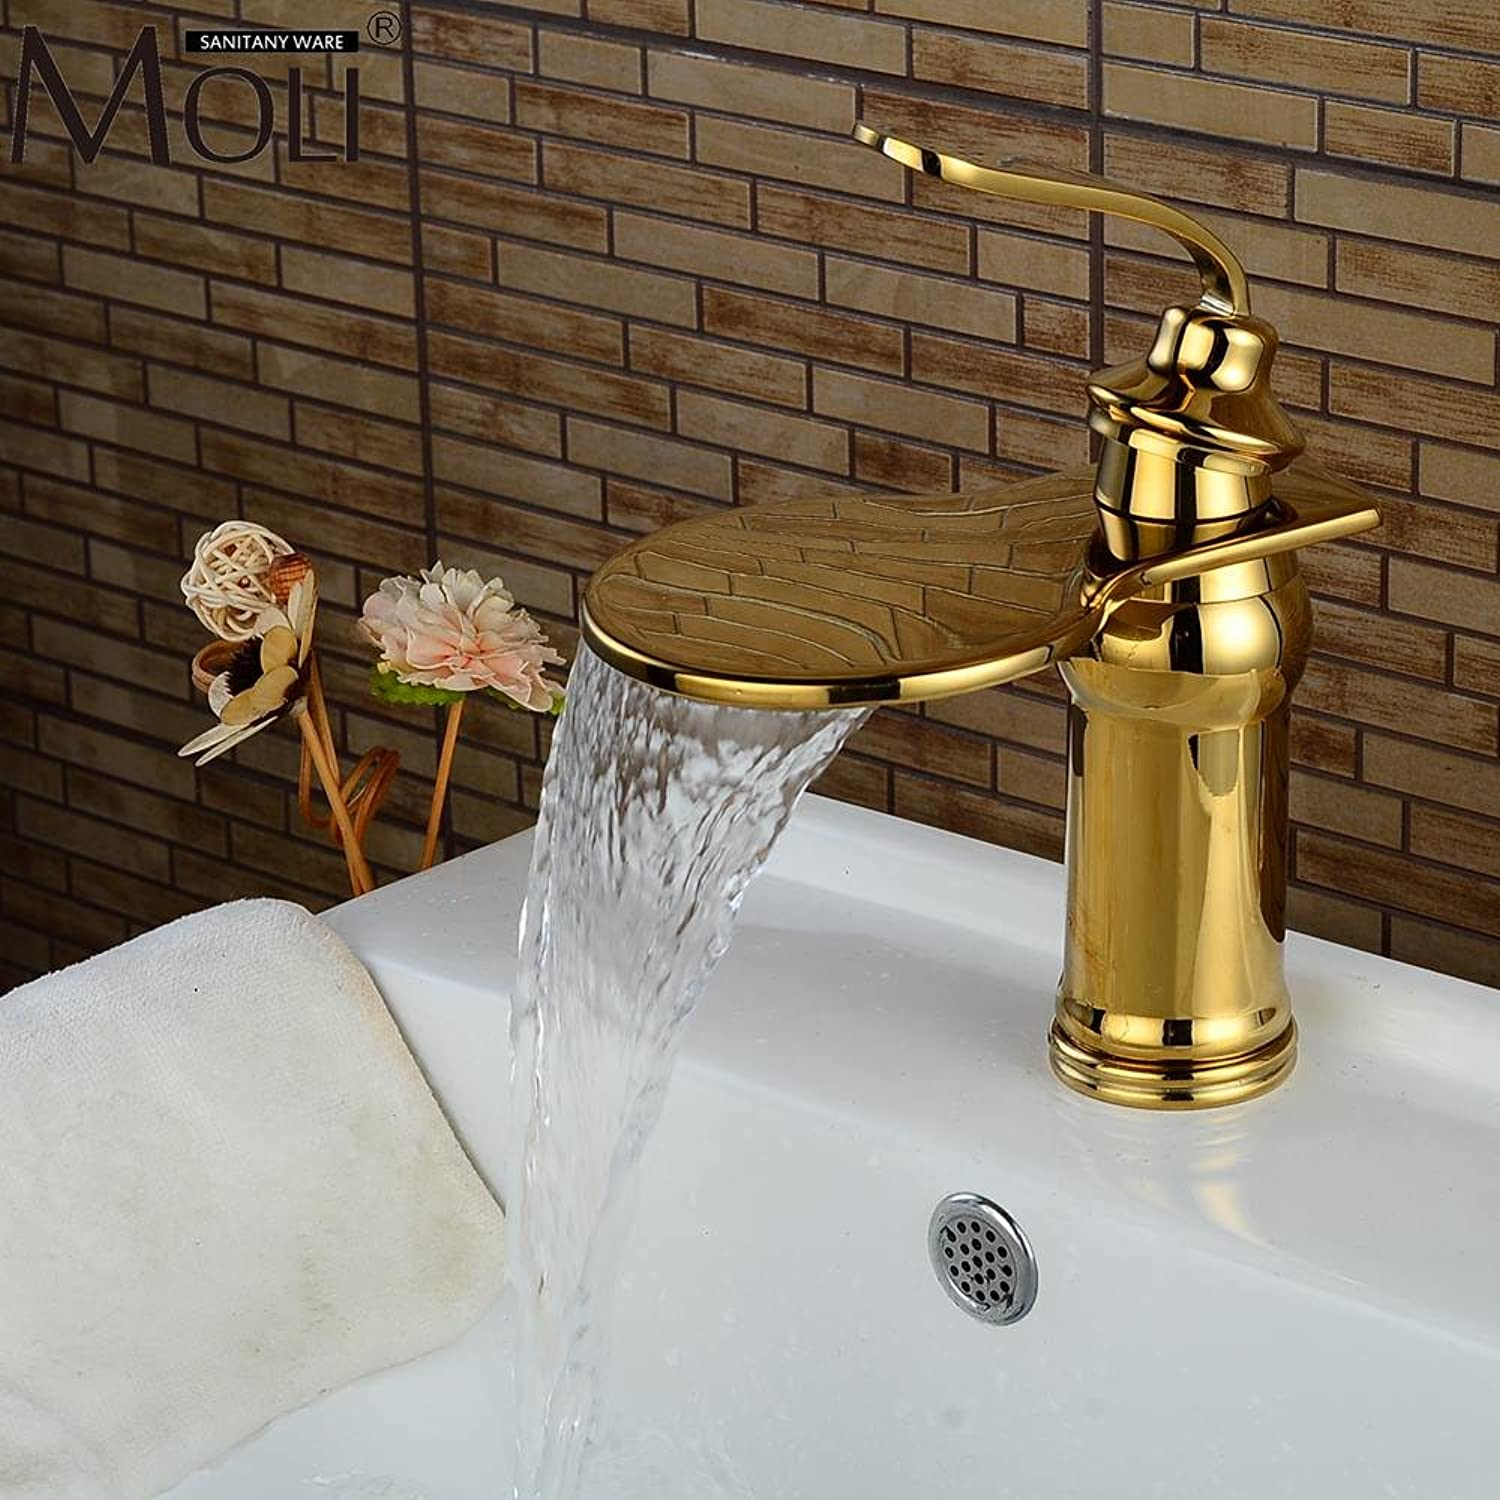 Retro Deluxe FaucetingLuxury Waterfall gold Bathroom Sink Faucet Hot And Cold Water Mixer Tap Copper Basin Sink Faucets